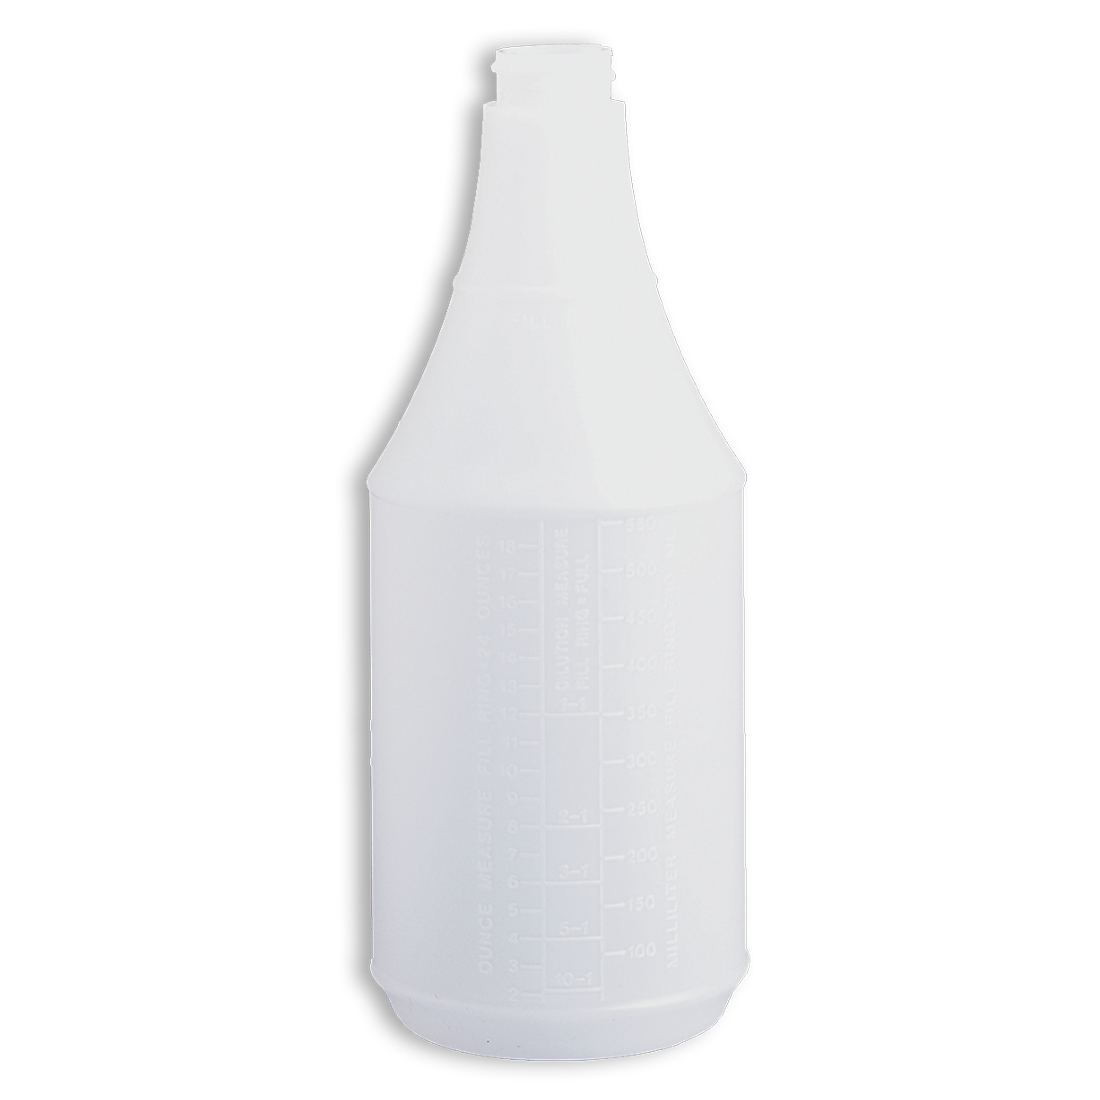 24oz Tolco® Round Poly Bottle w/ Embossed Scale, Plastic, White